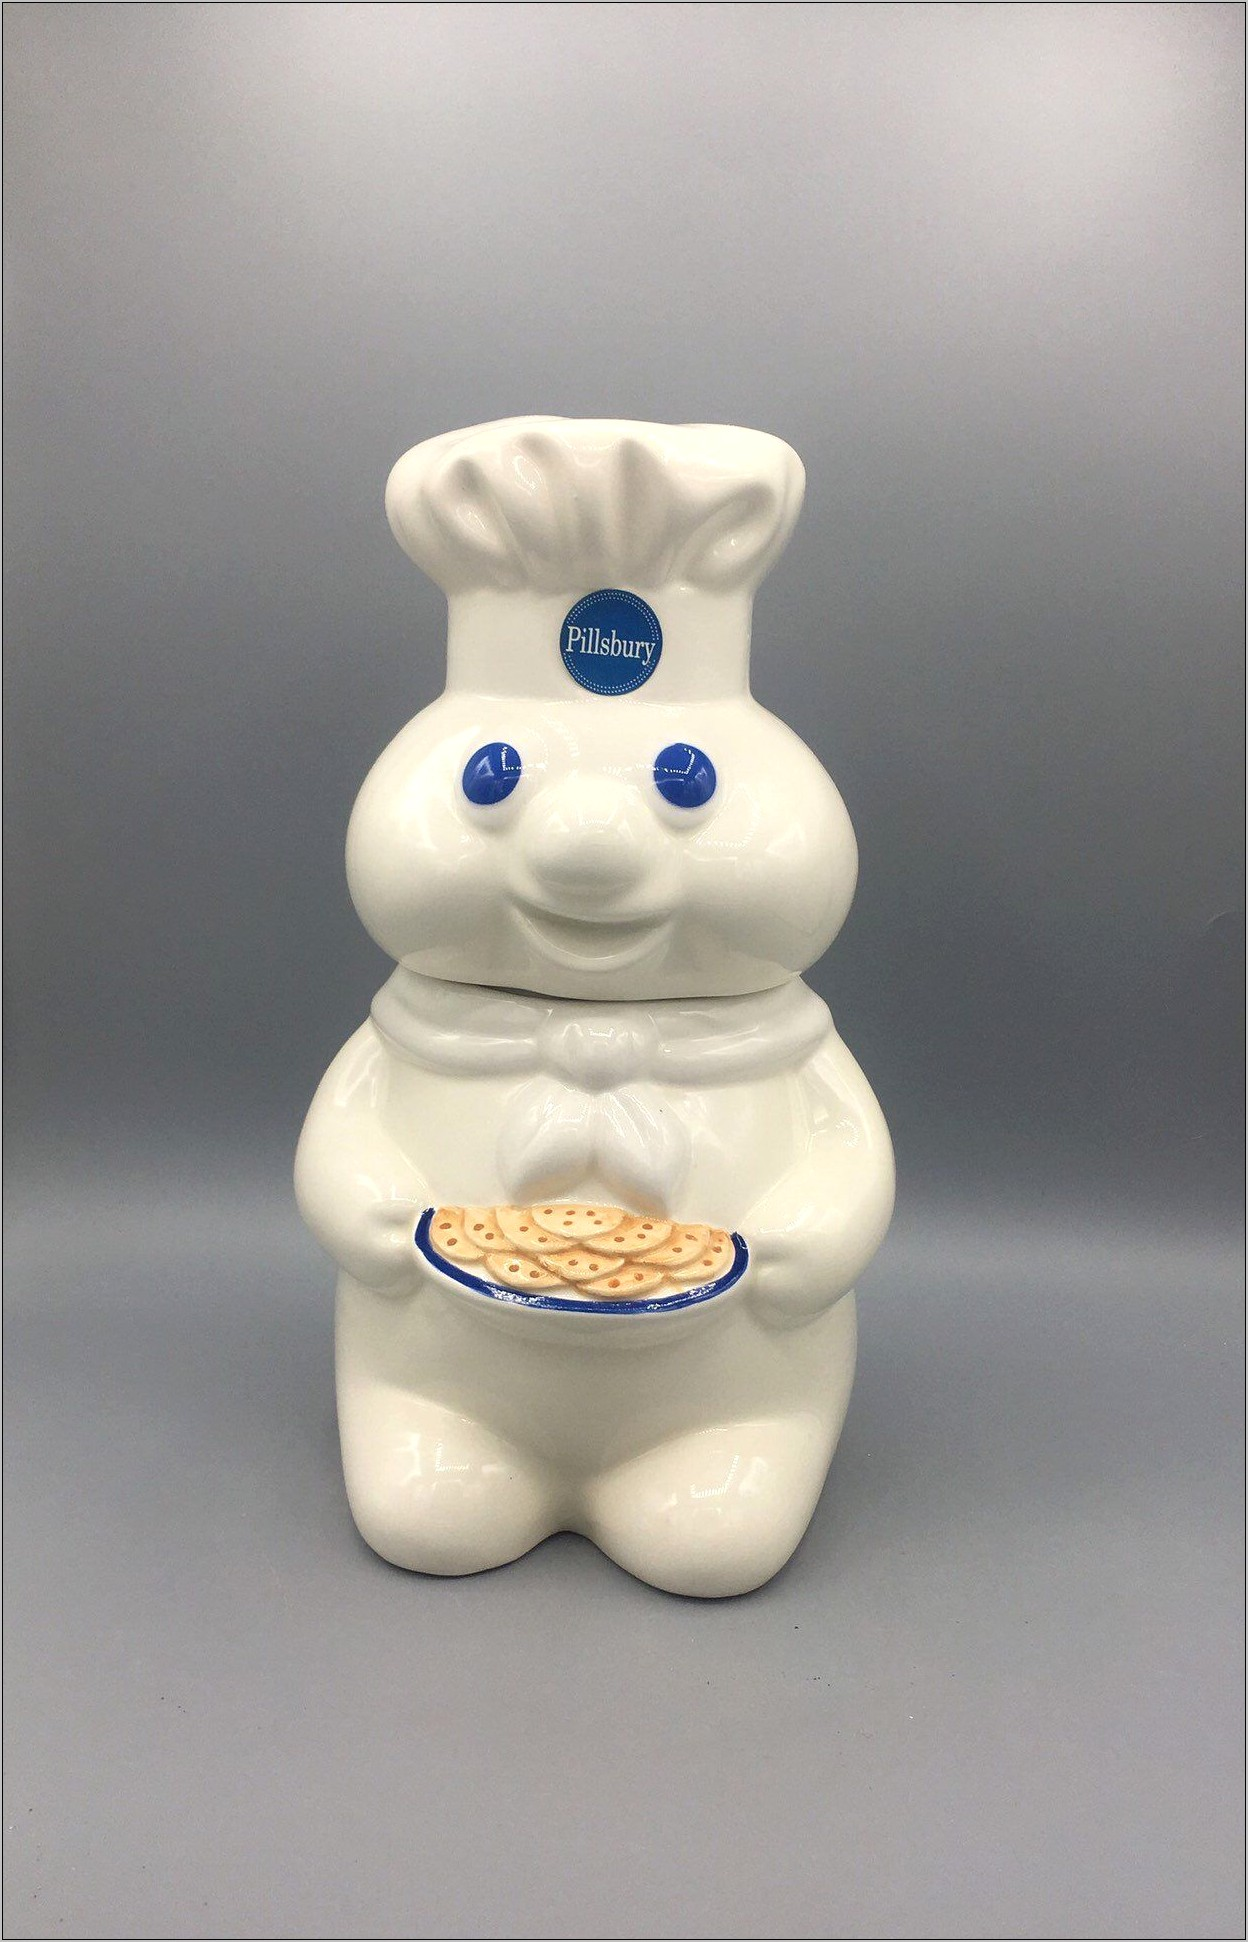 Pillsbury Foughboy Kitchen Decors